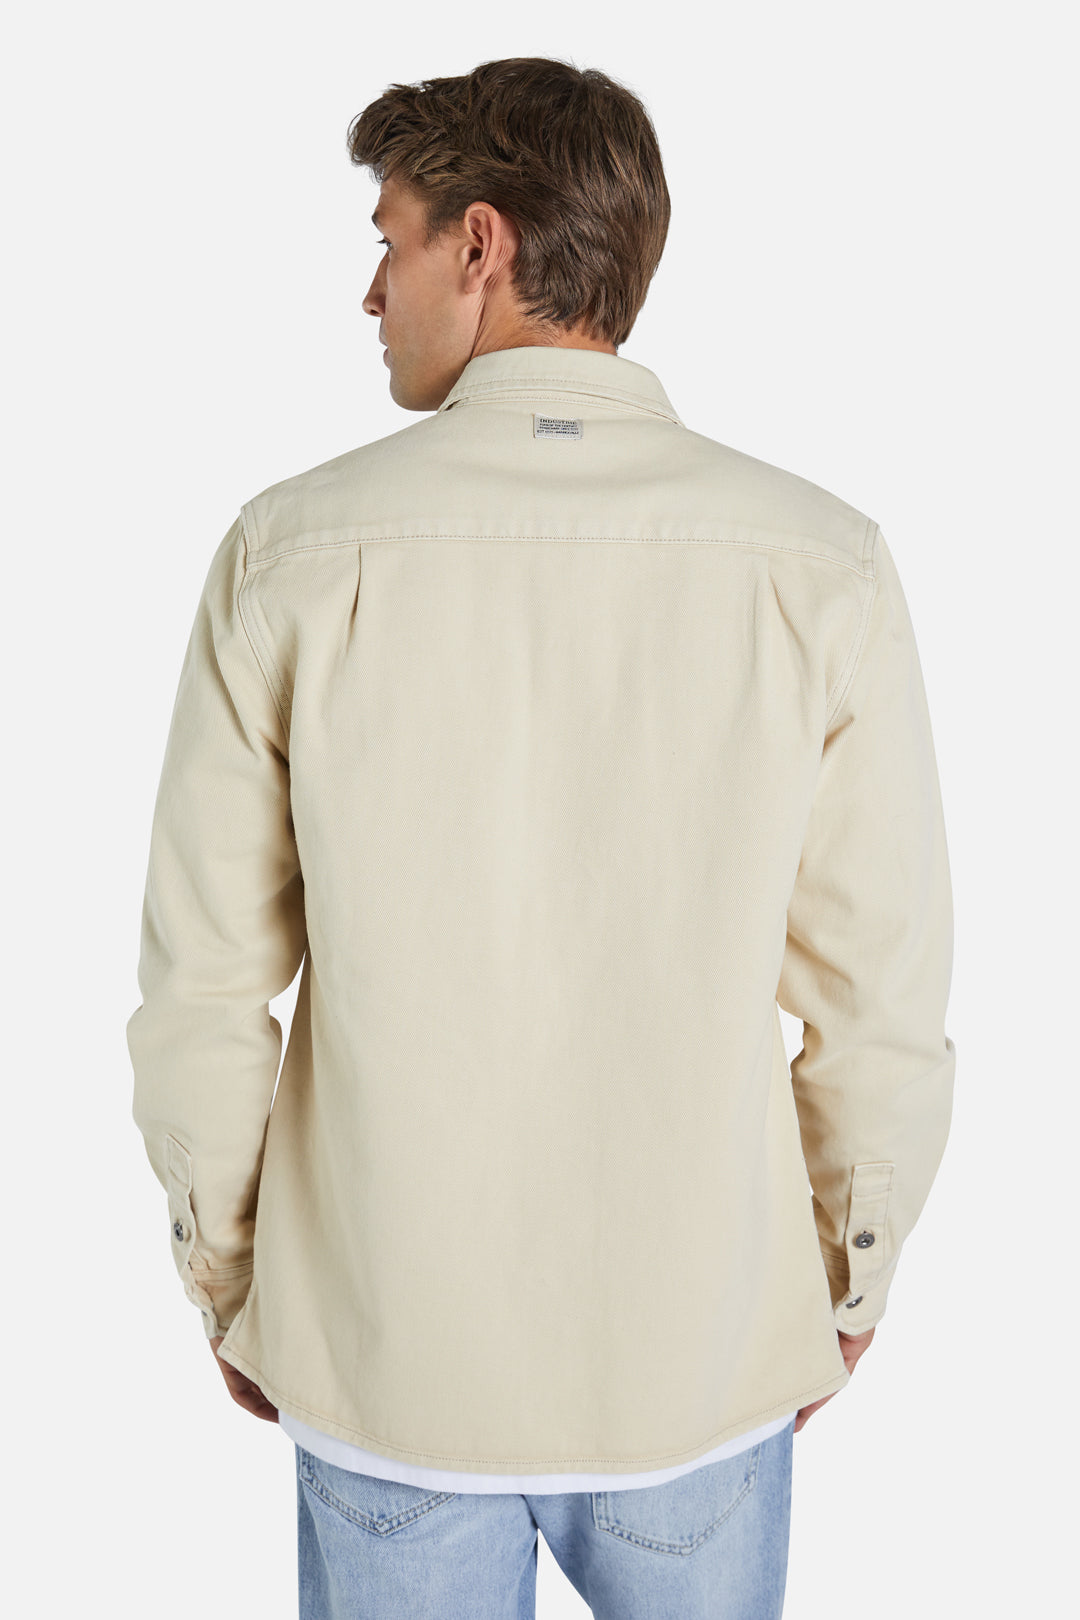 The New Bayou Jacket - Sand 20